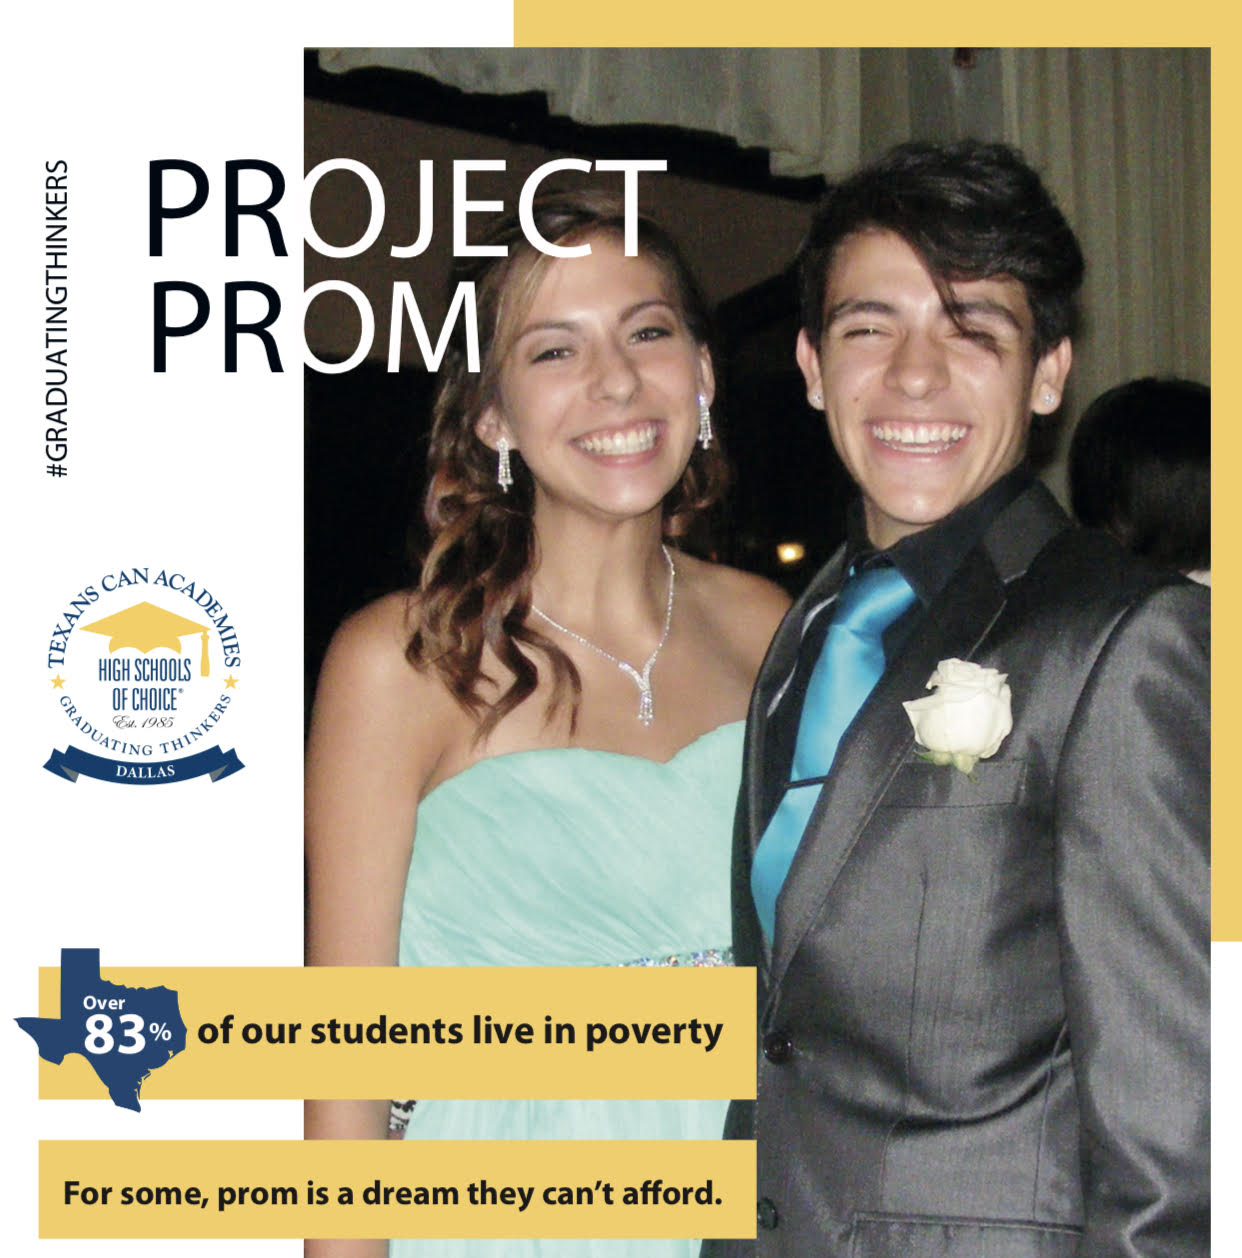 Texans Can Academies - Dallas - Project Prom